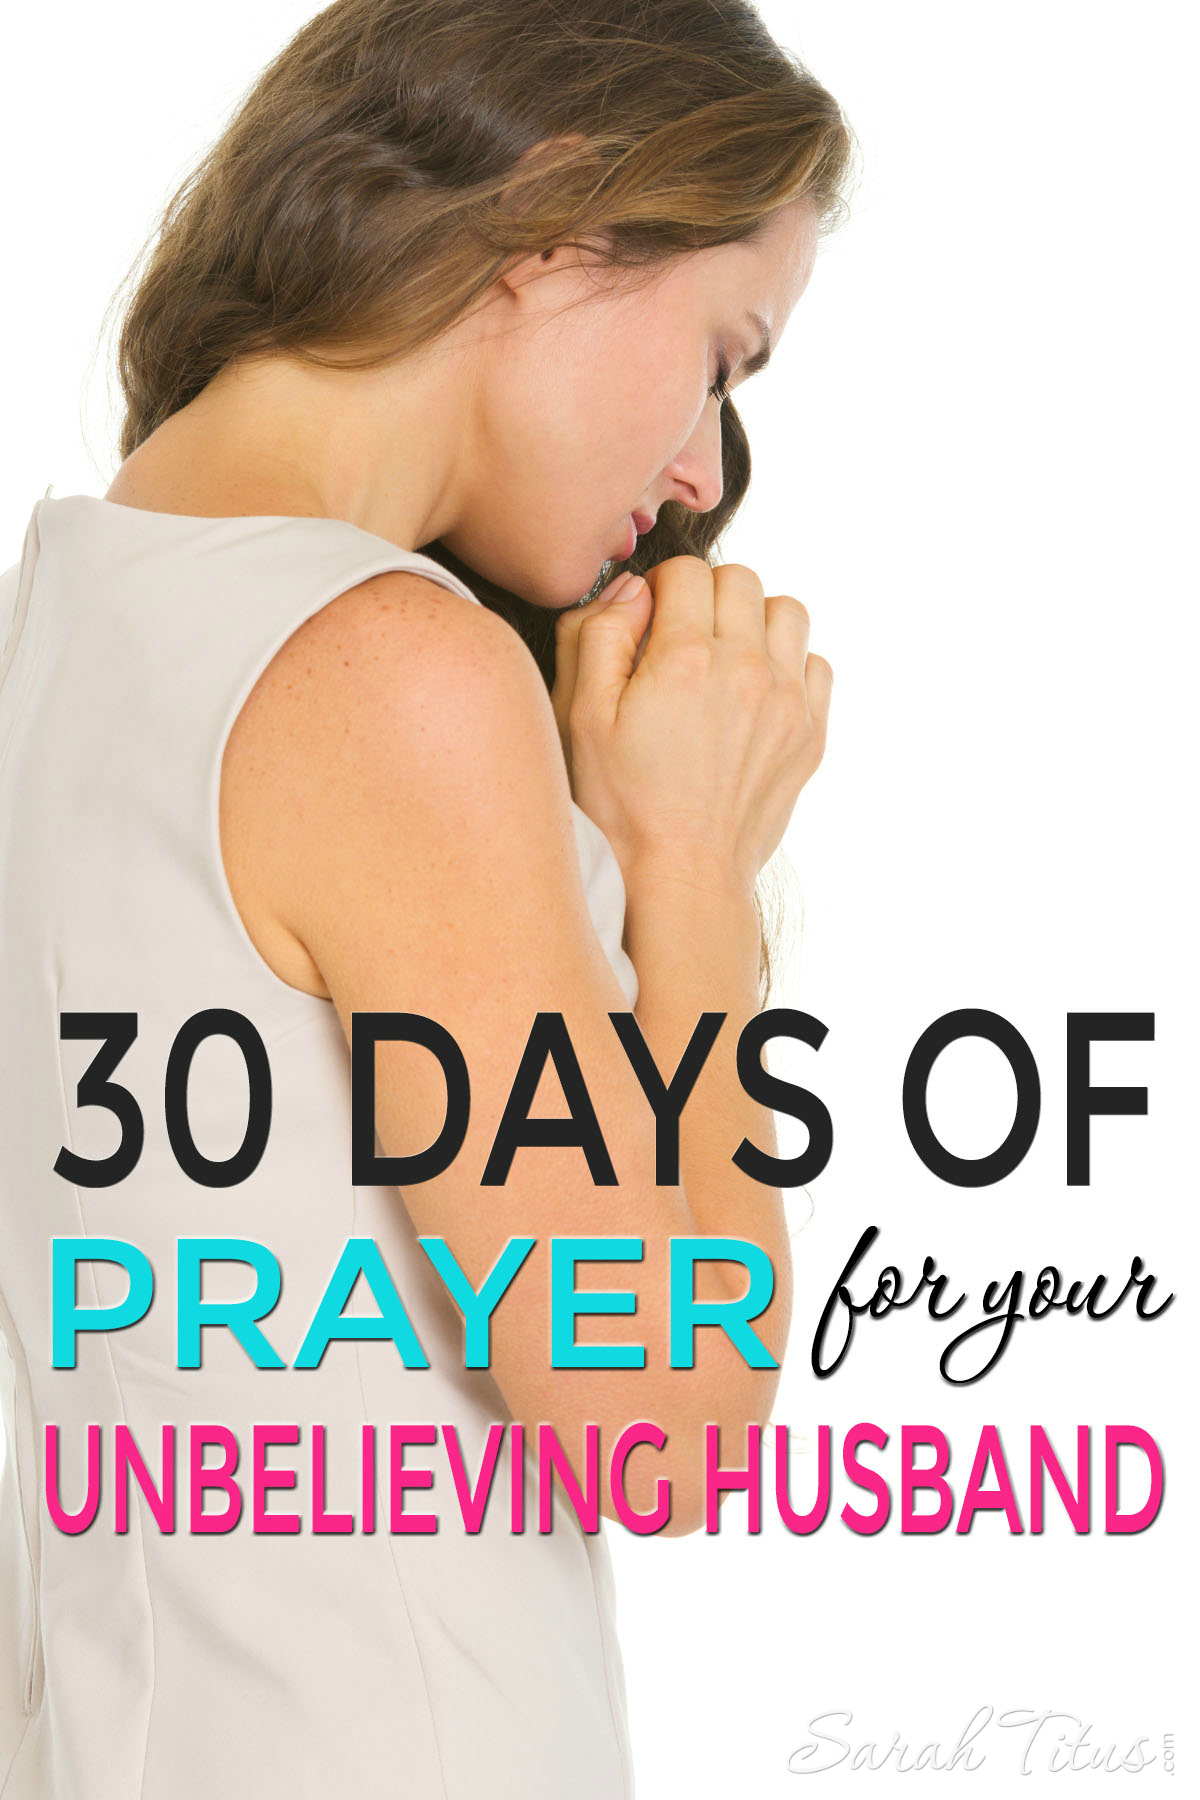 30 Days of Prayer for Your Unbelieving Husband